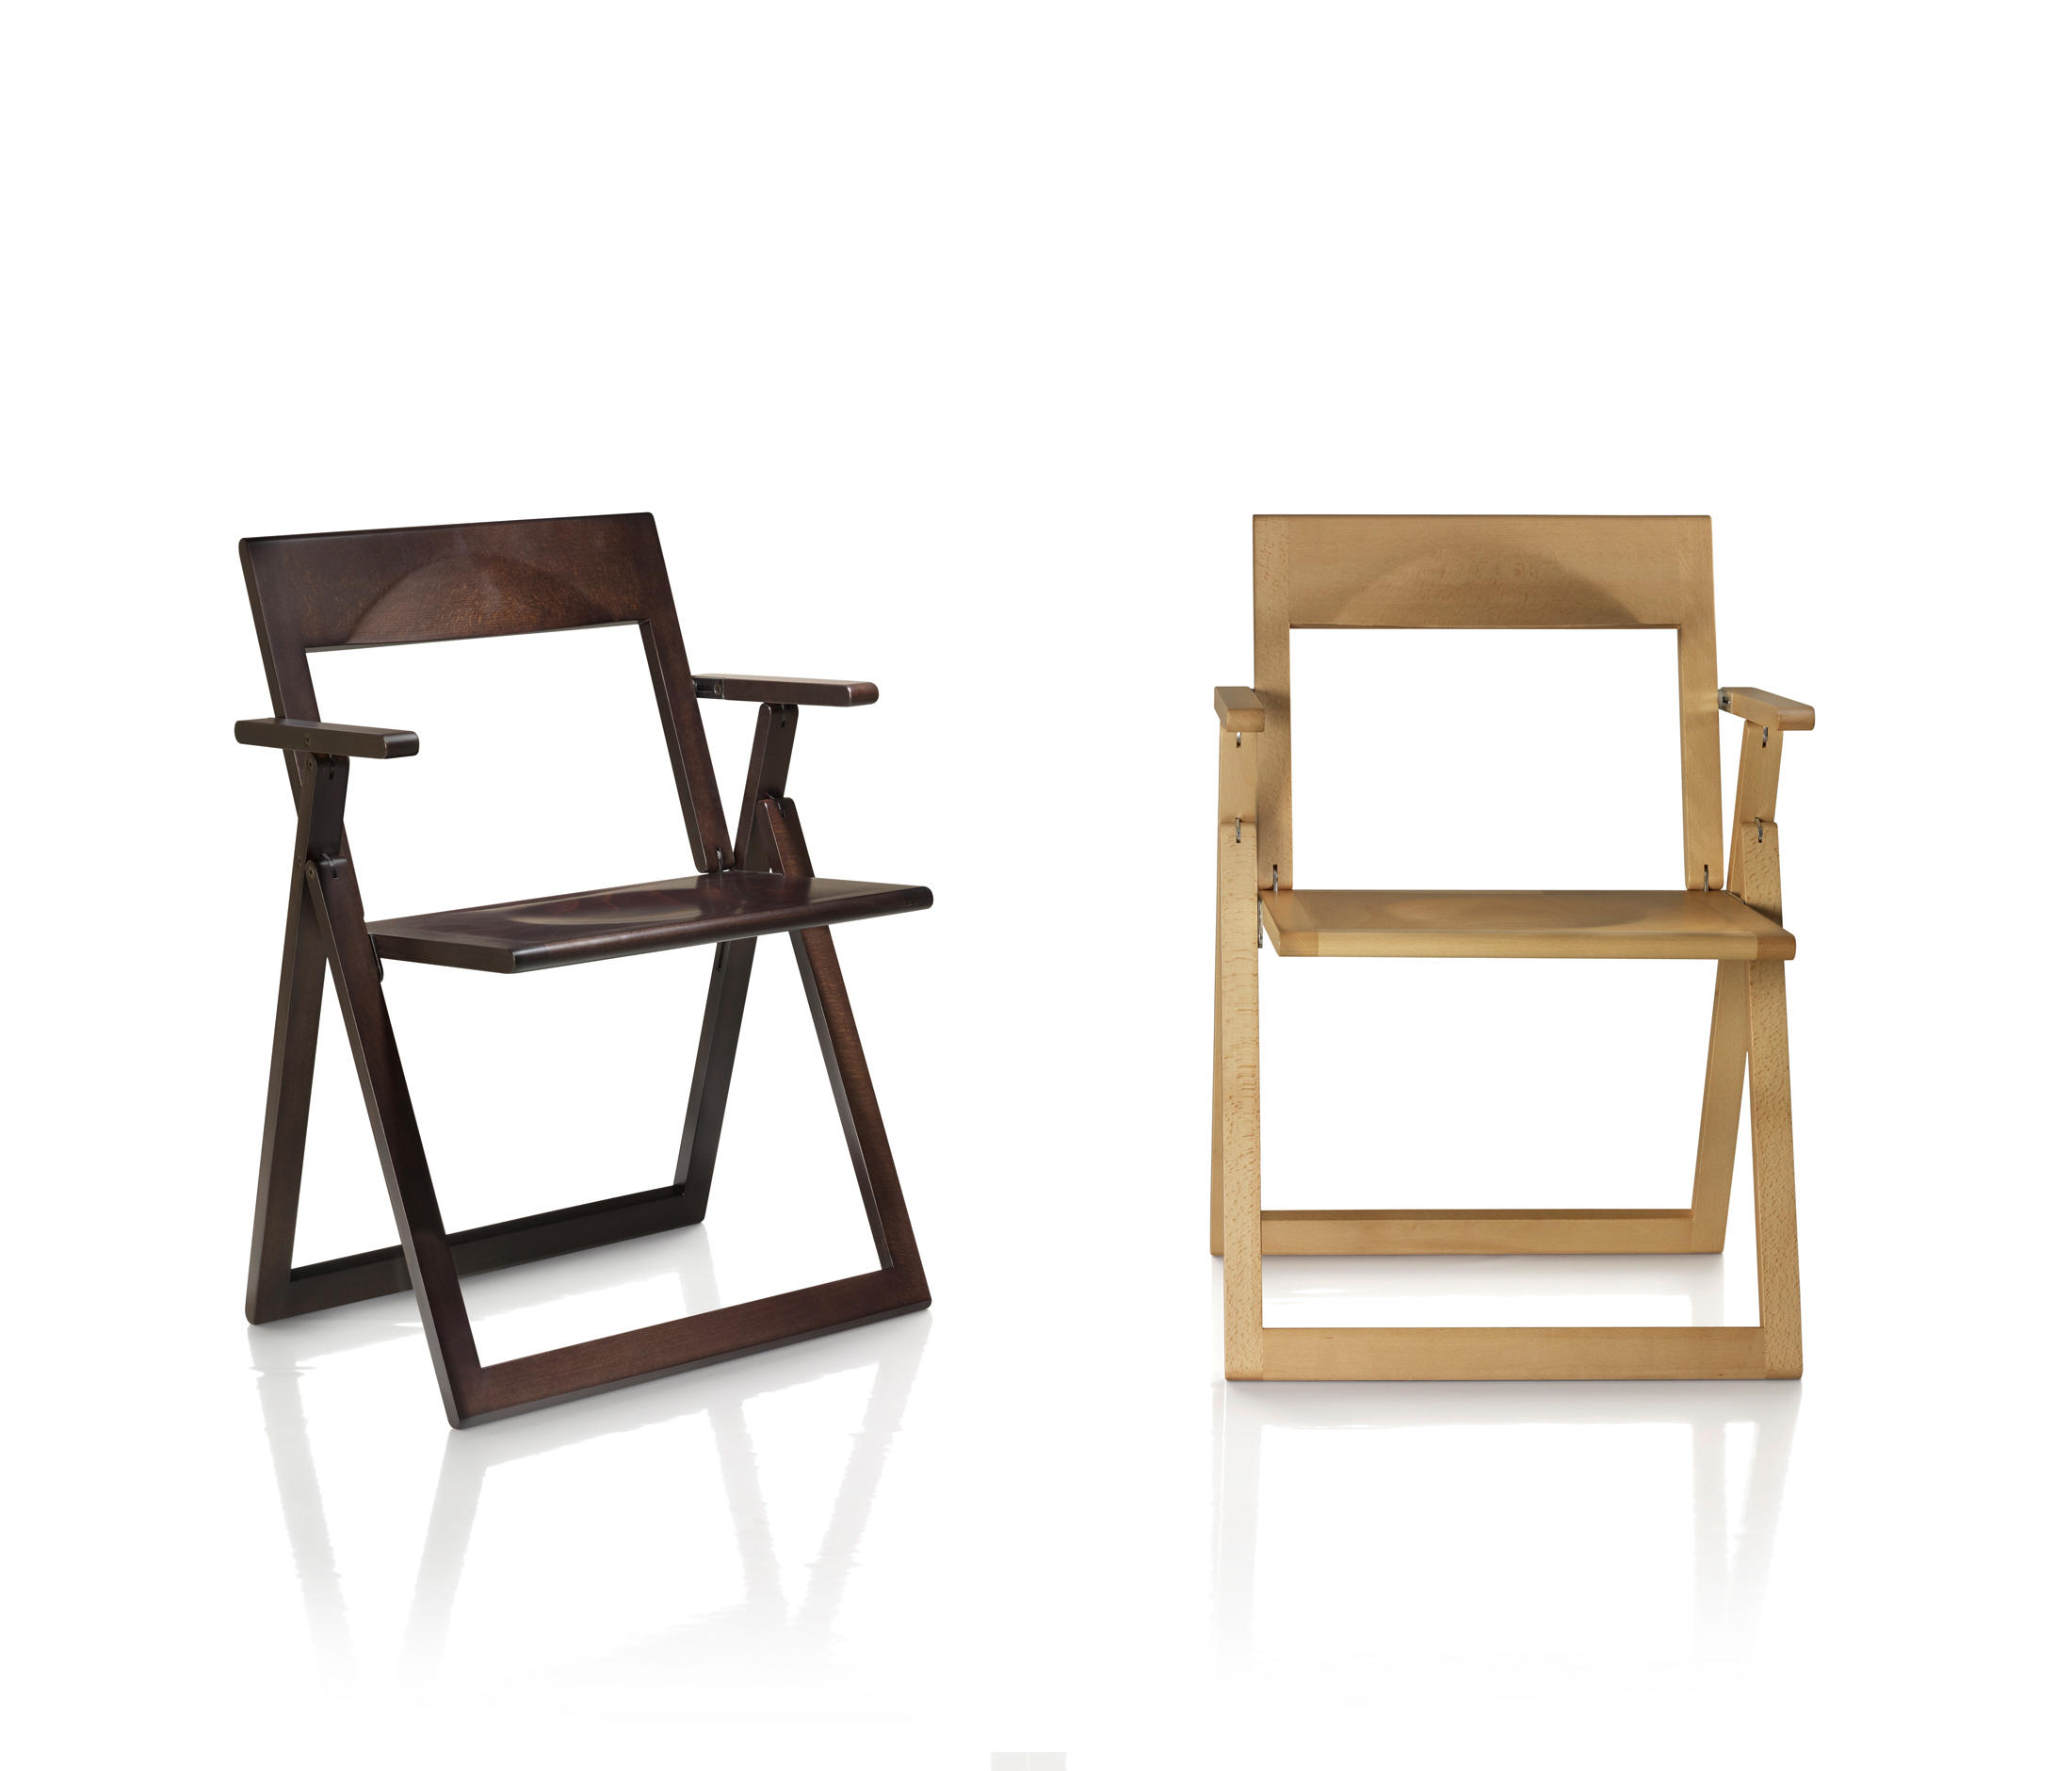 AVIVA FOLDING CHAIR Chairs from Magis